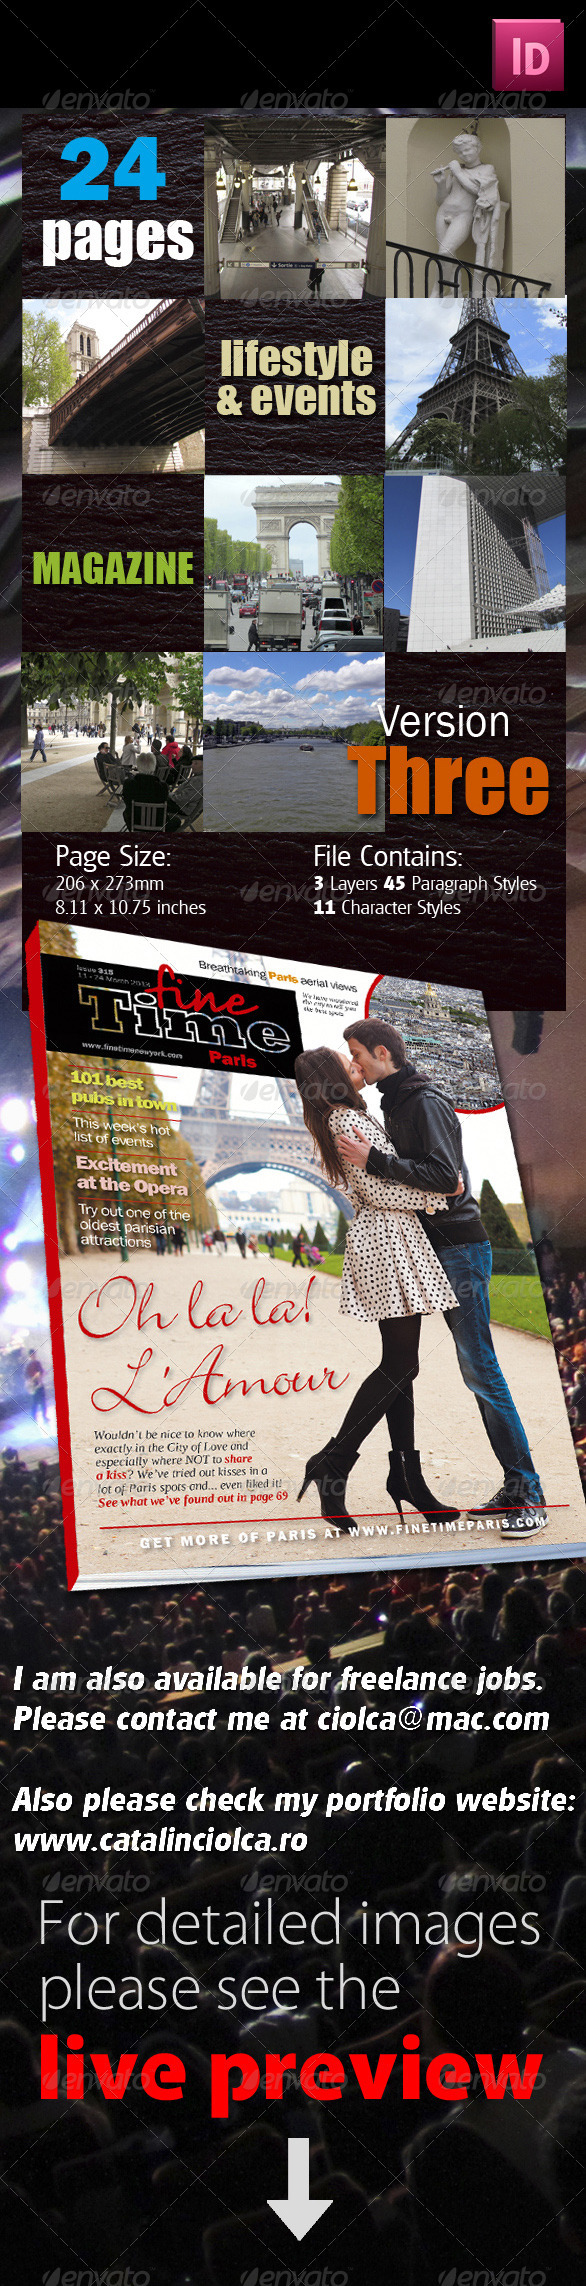 24 Pages Lifestyle & Events Magazine Version Three - Magazines Print Templates